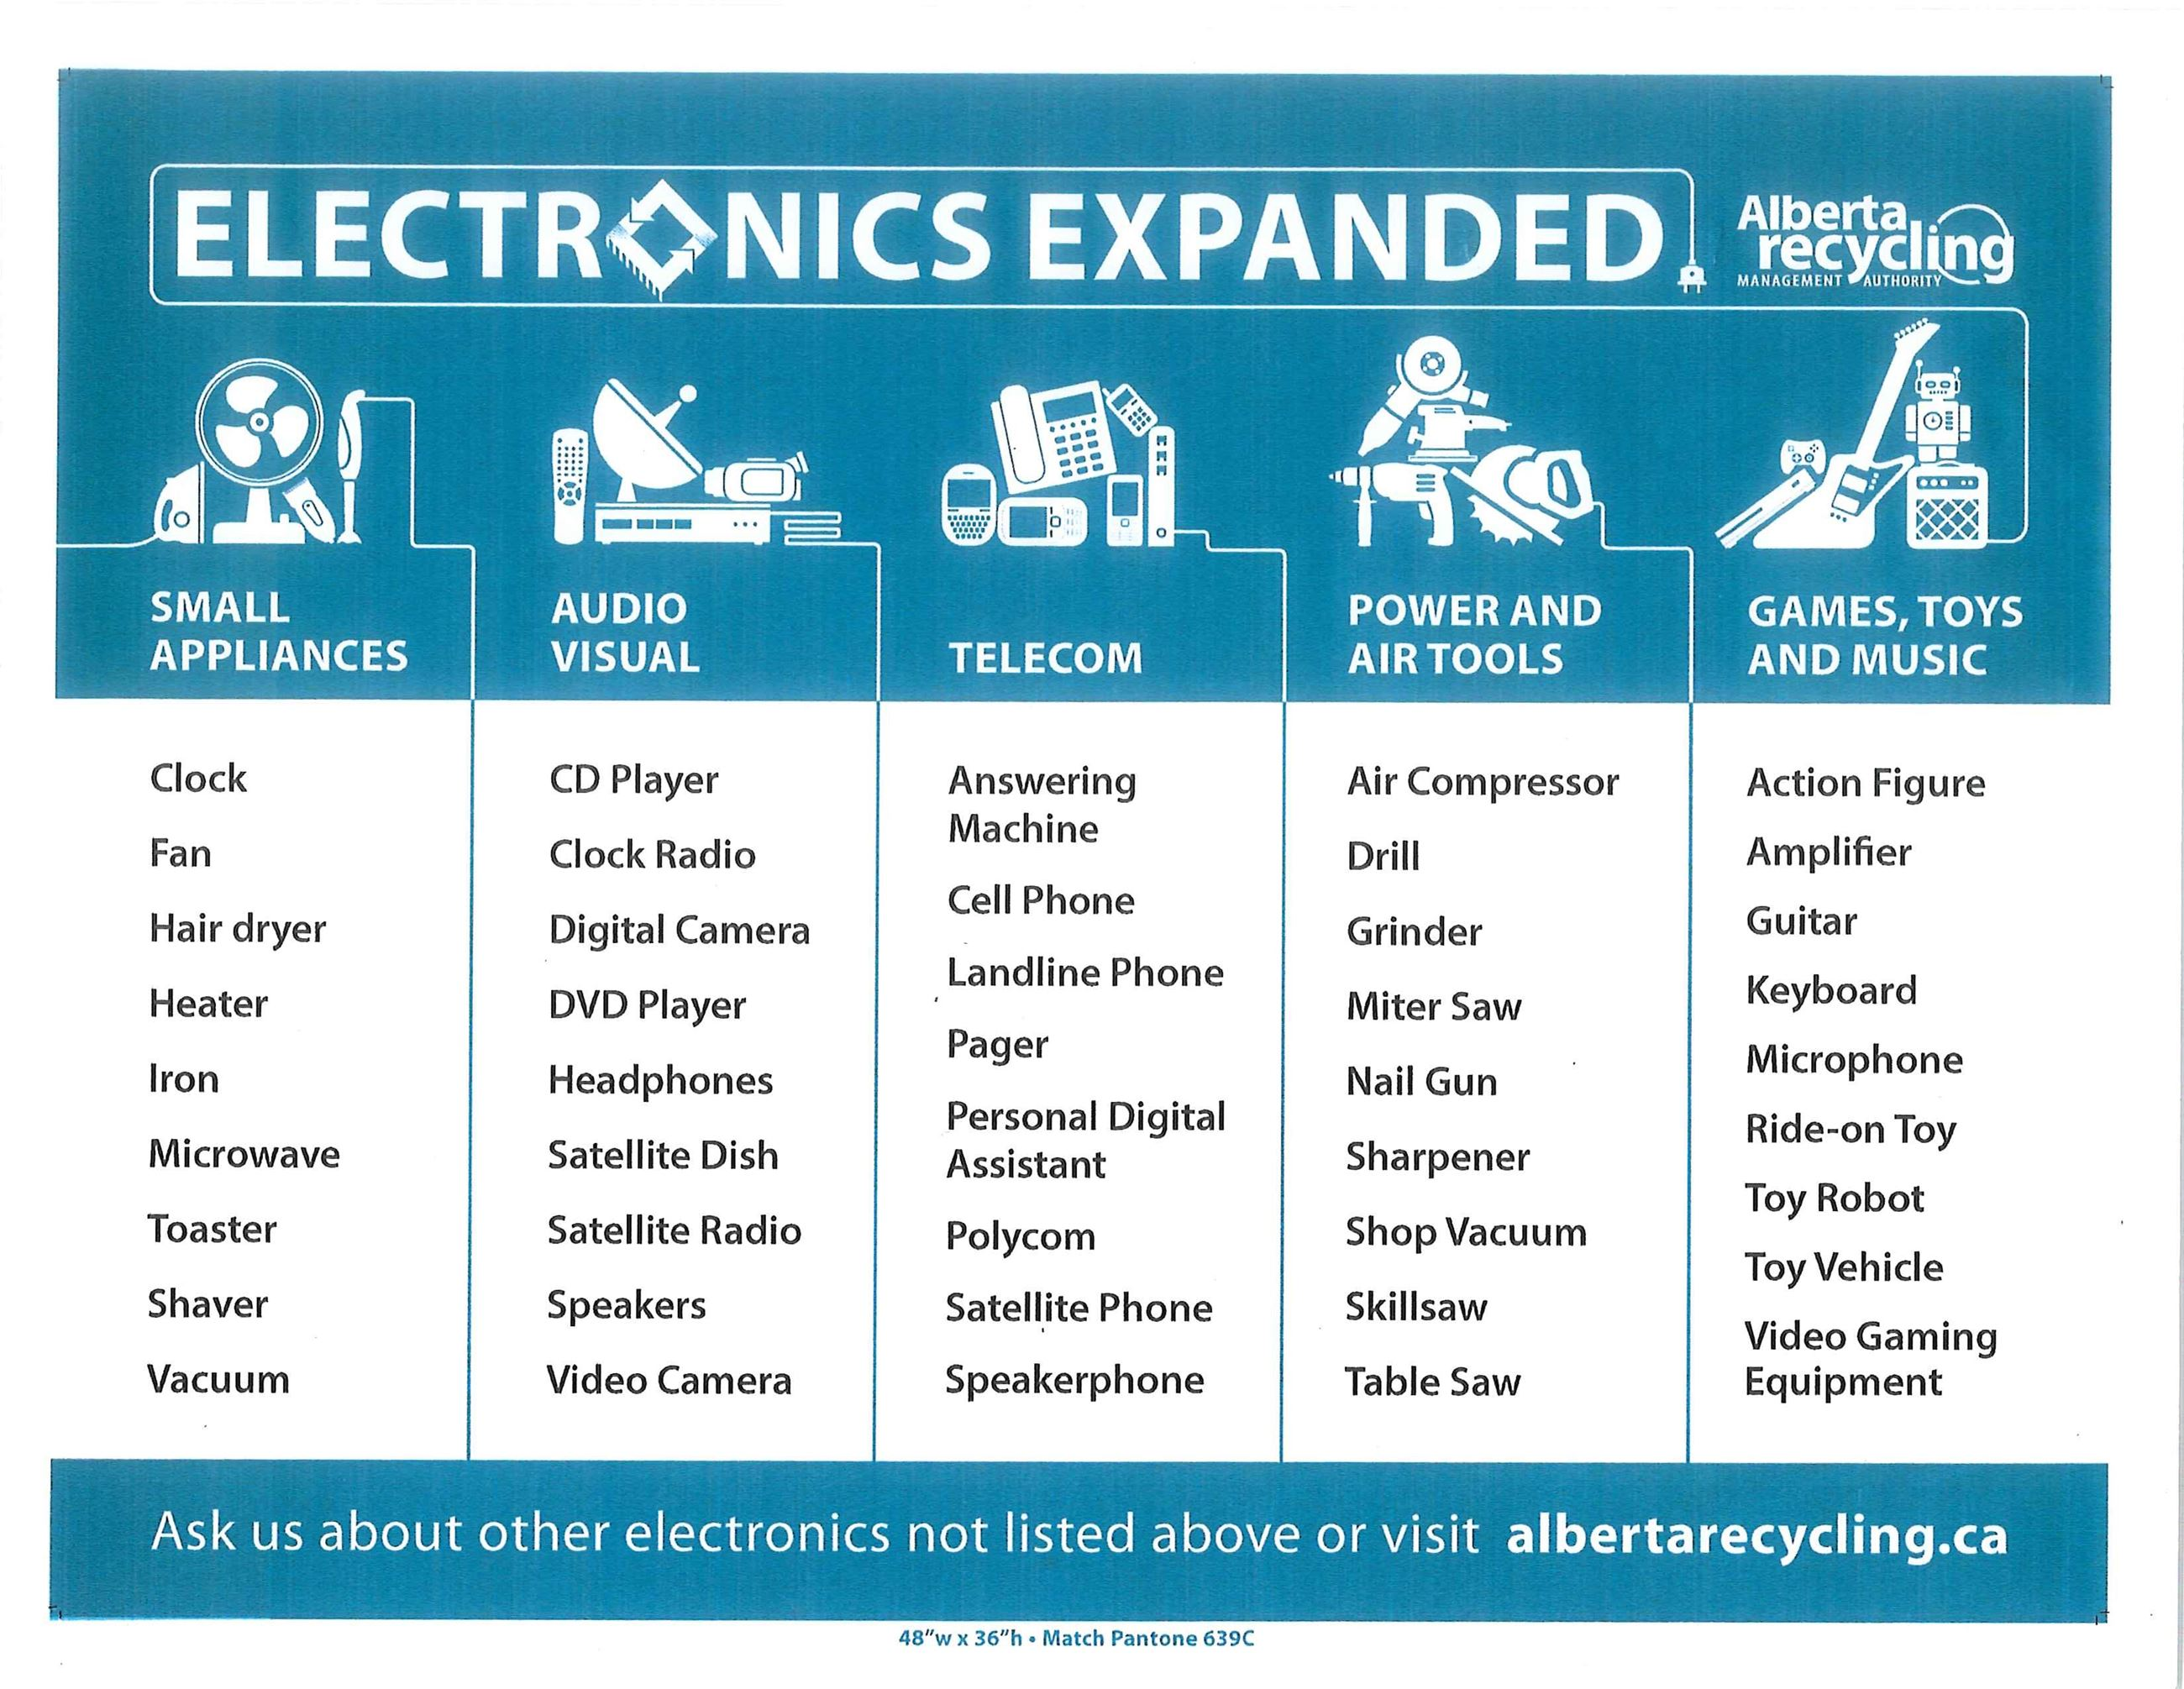 Electronics Expanded - Alberta Recycling